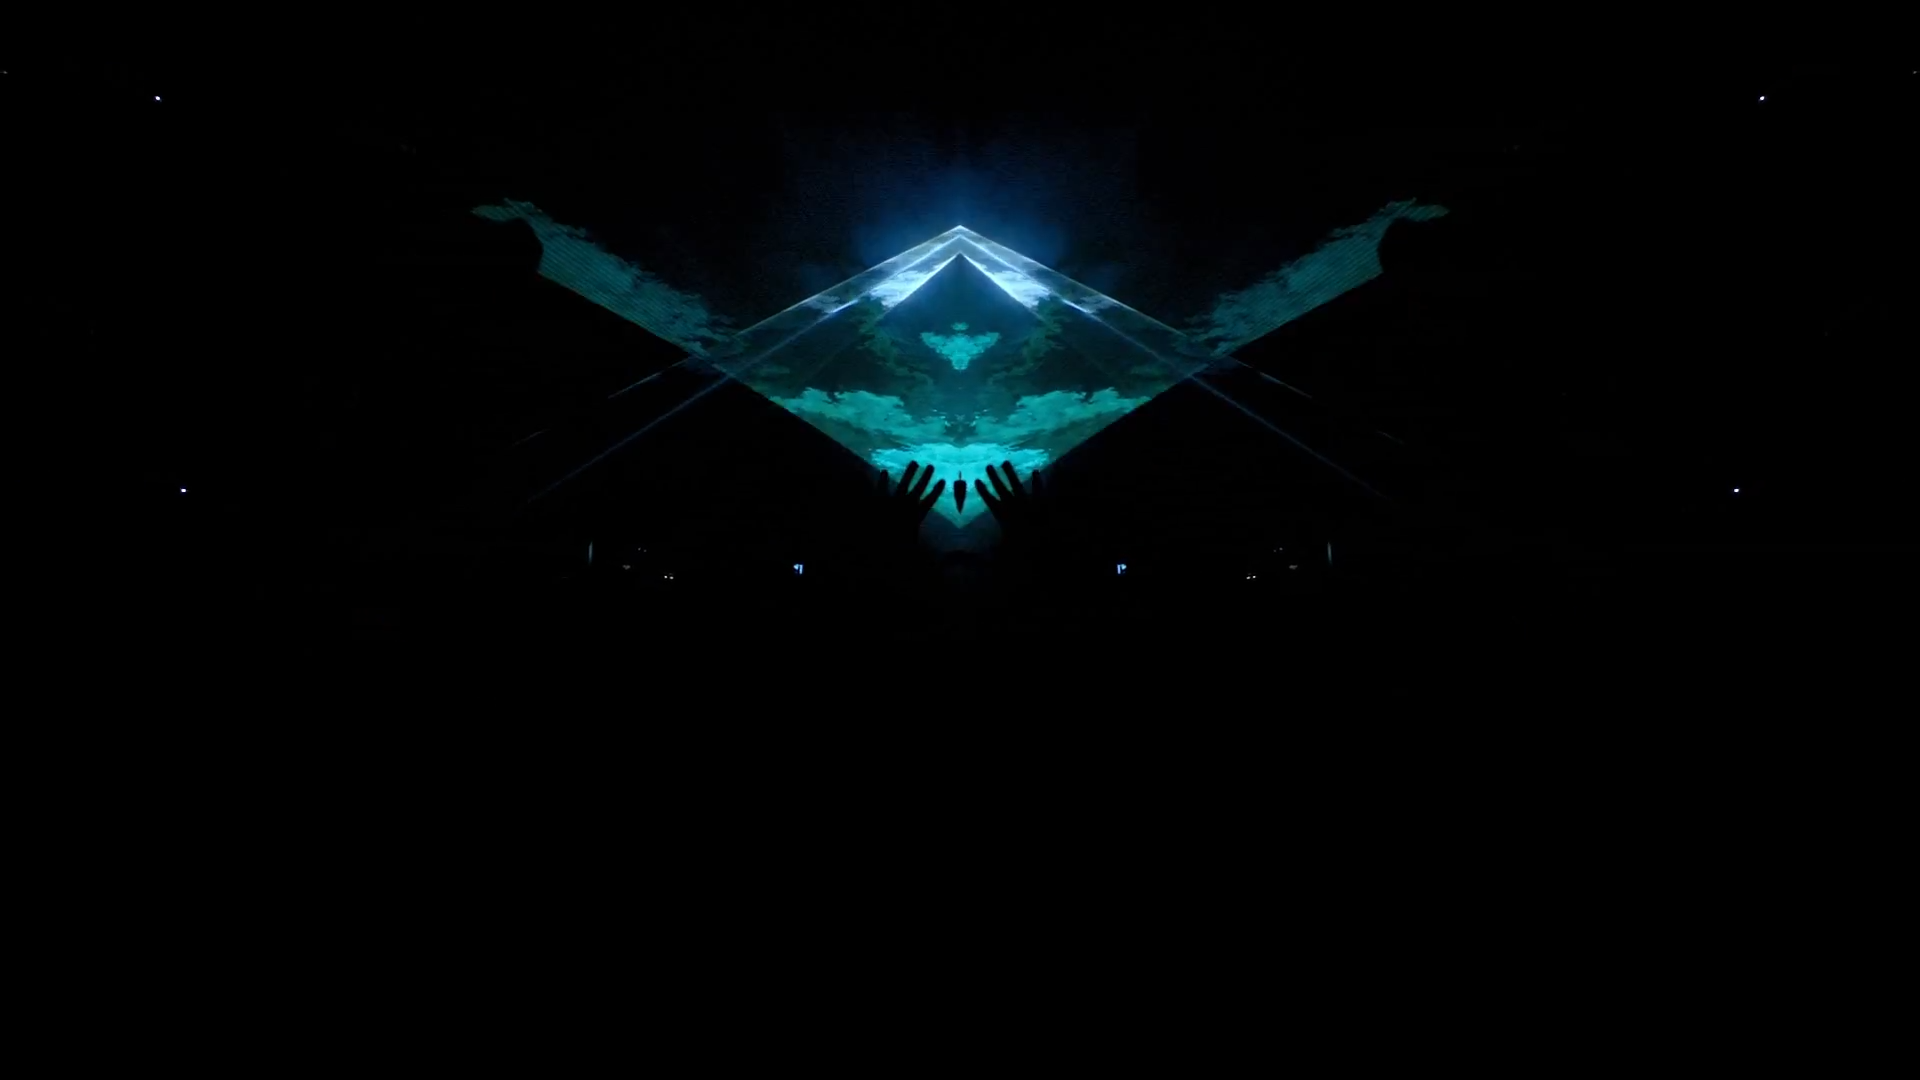 Illuminati Wallpaper 1080p Wallpapersafari